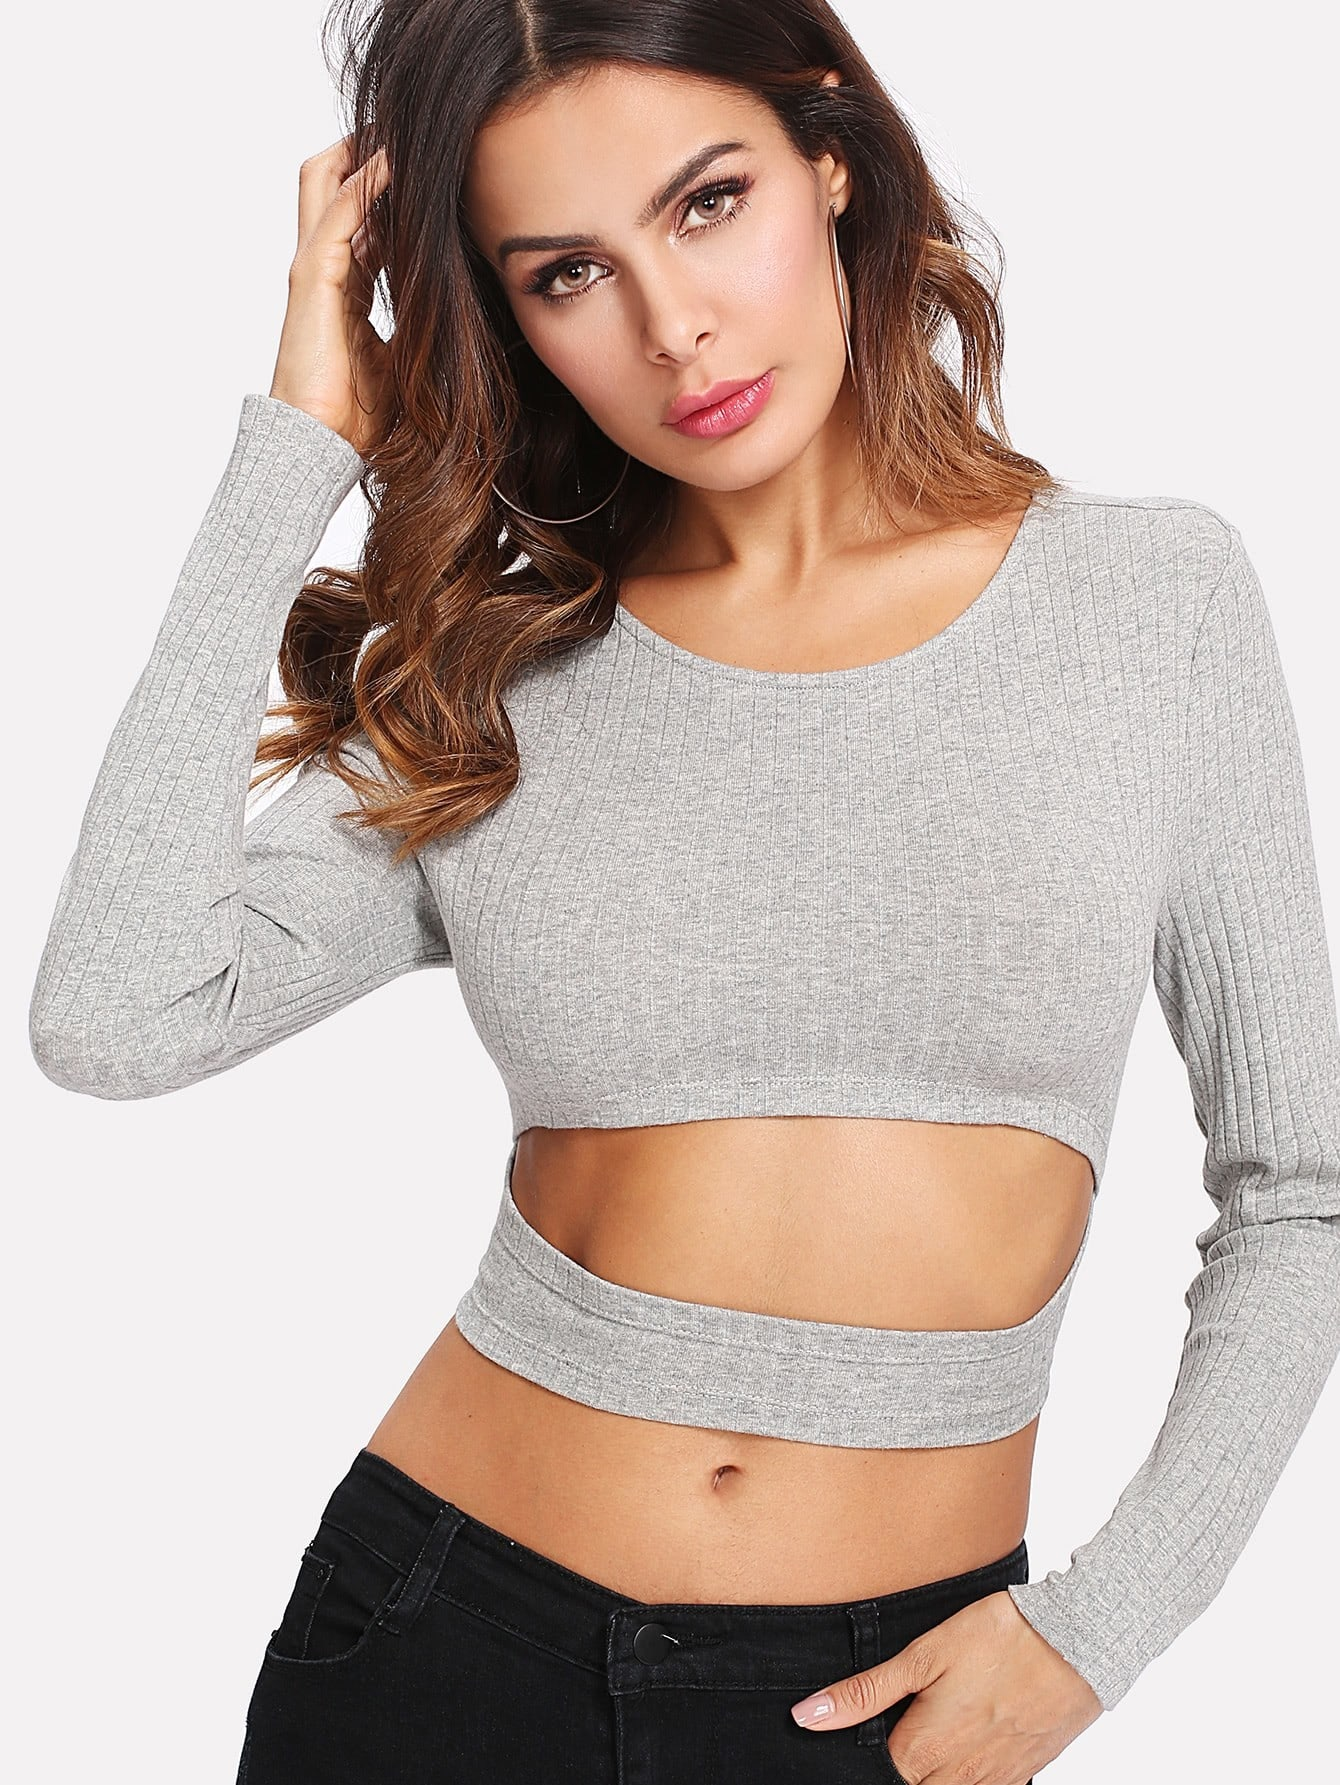 Cutout Midriff Rib Knit Heathered Tee tee171214707